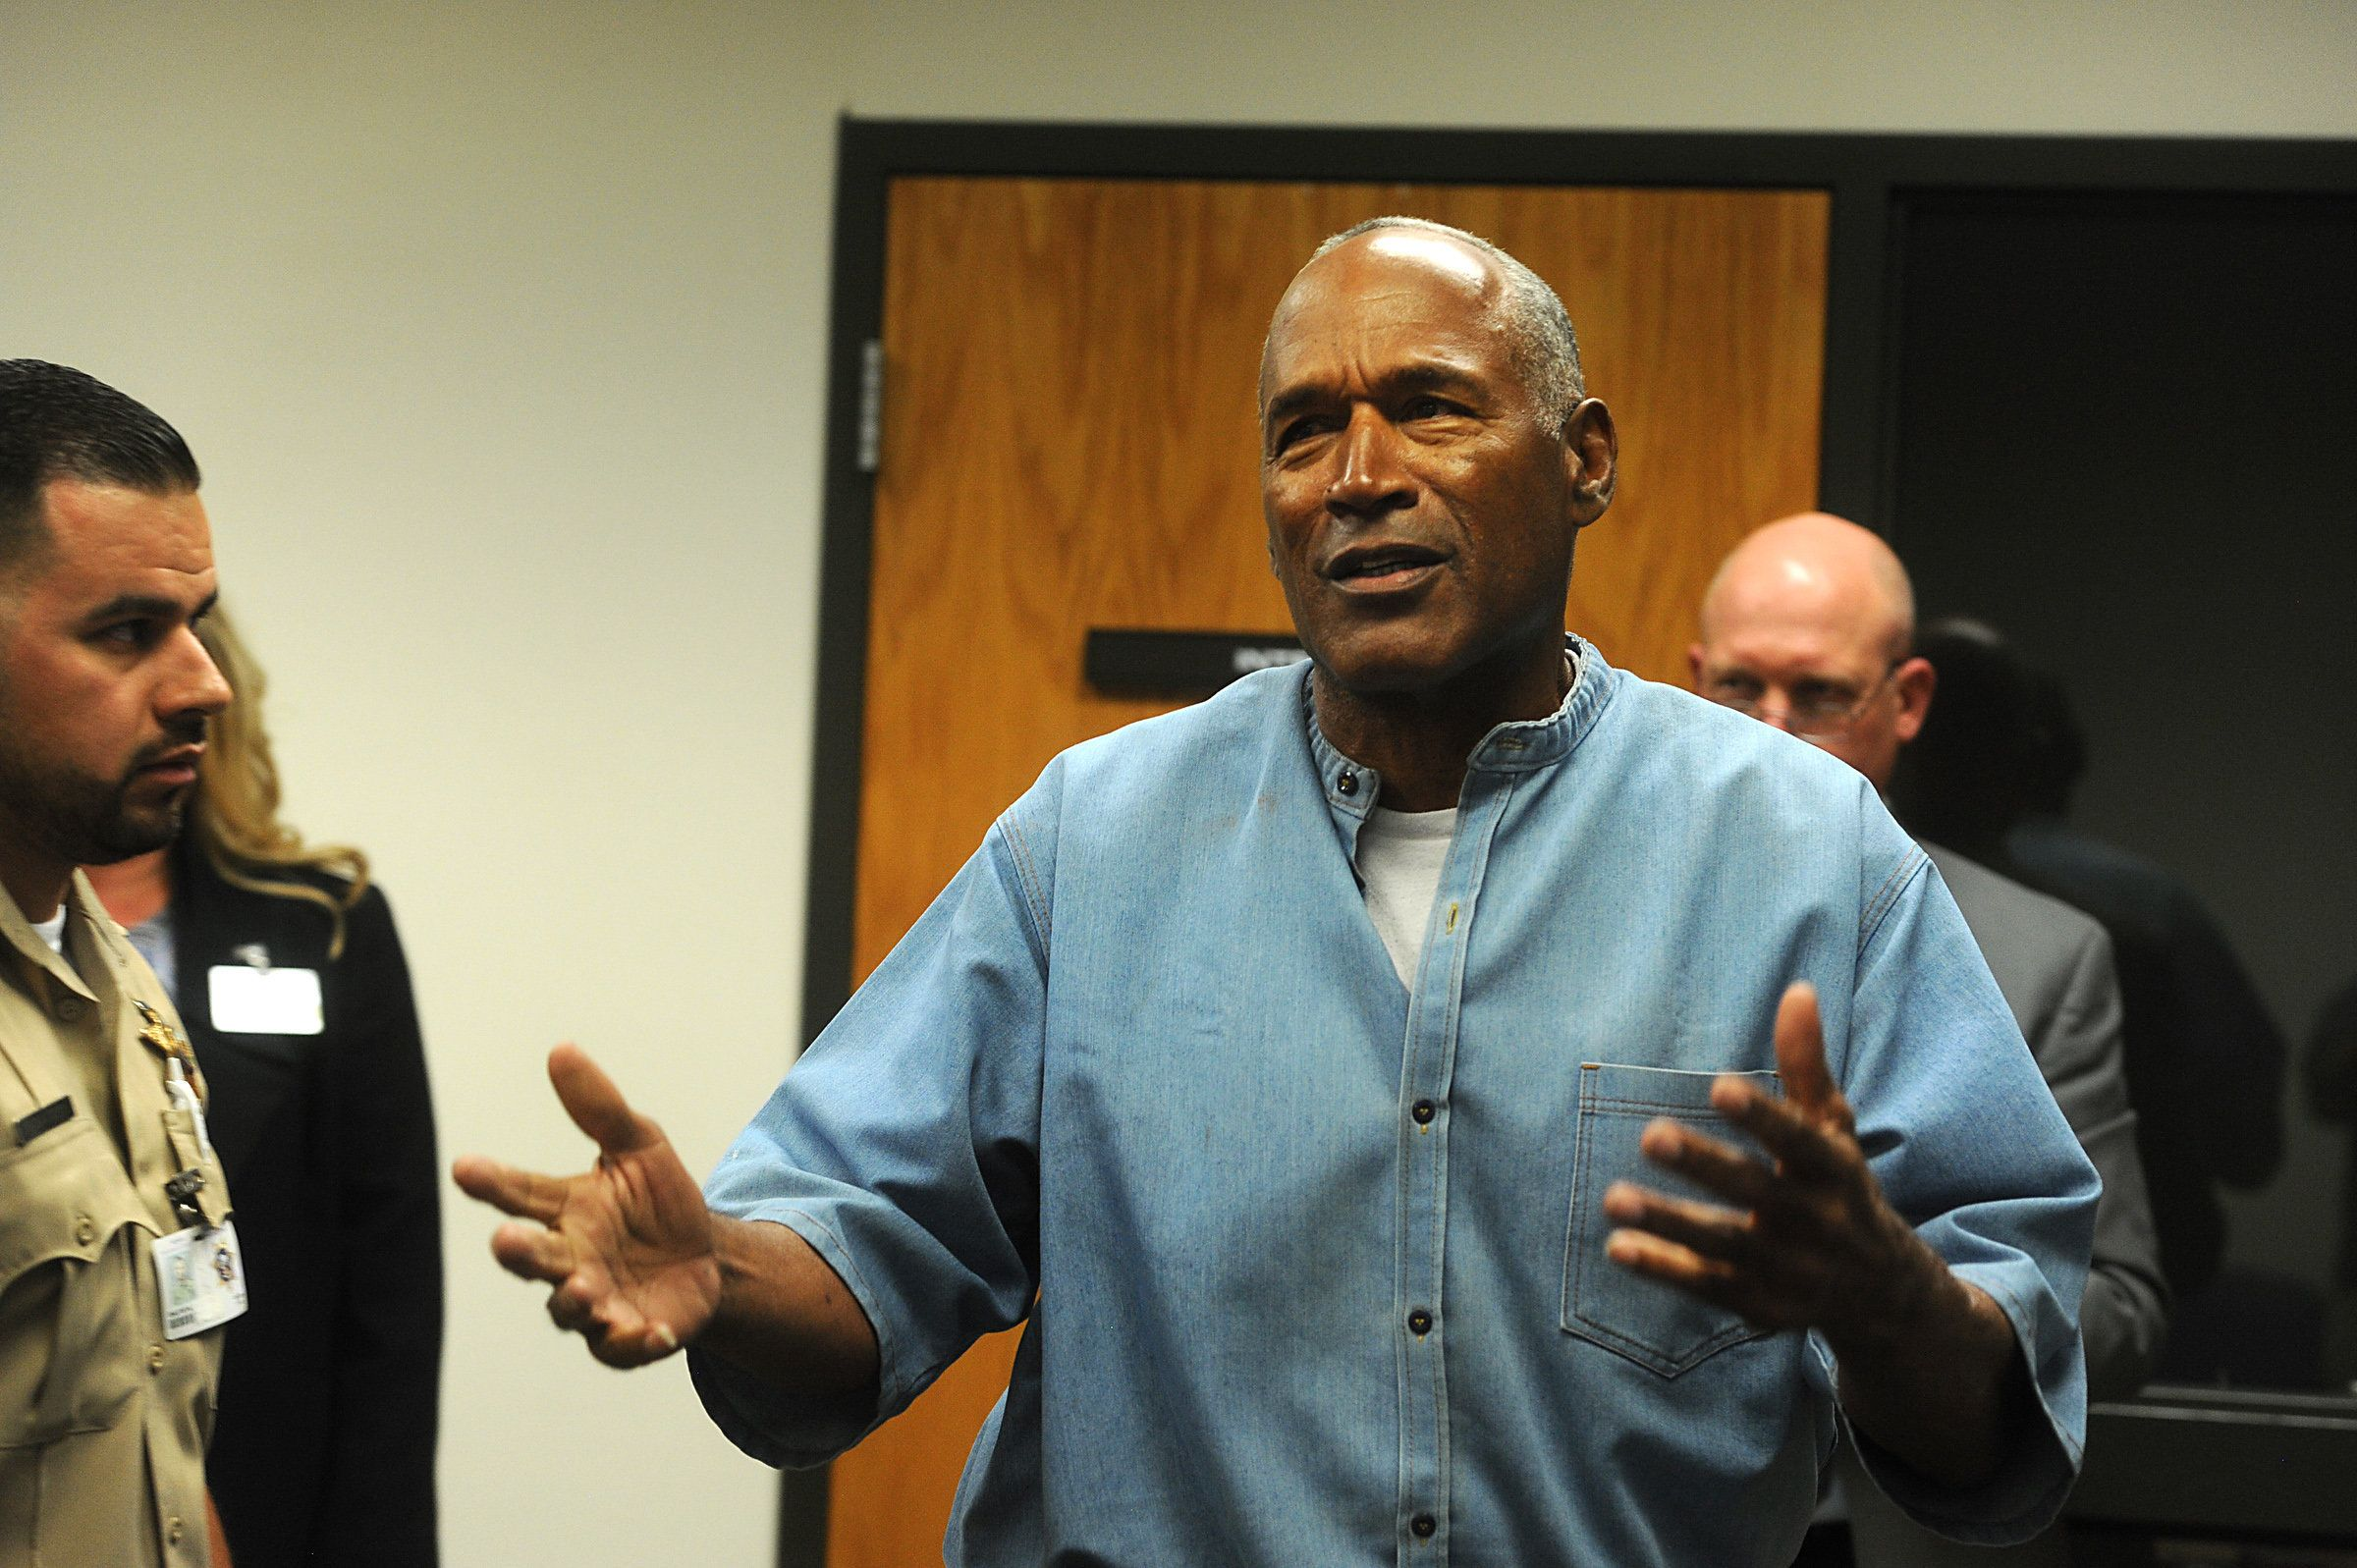 OJ Simpson seeks $5m to talk on TV after jail